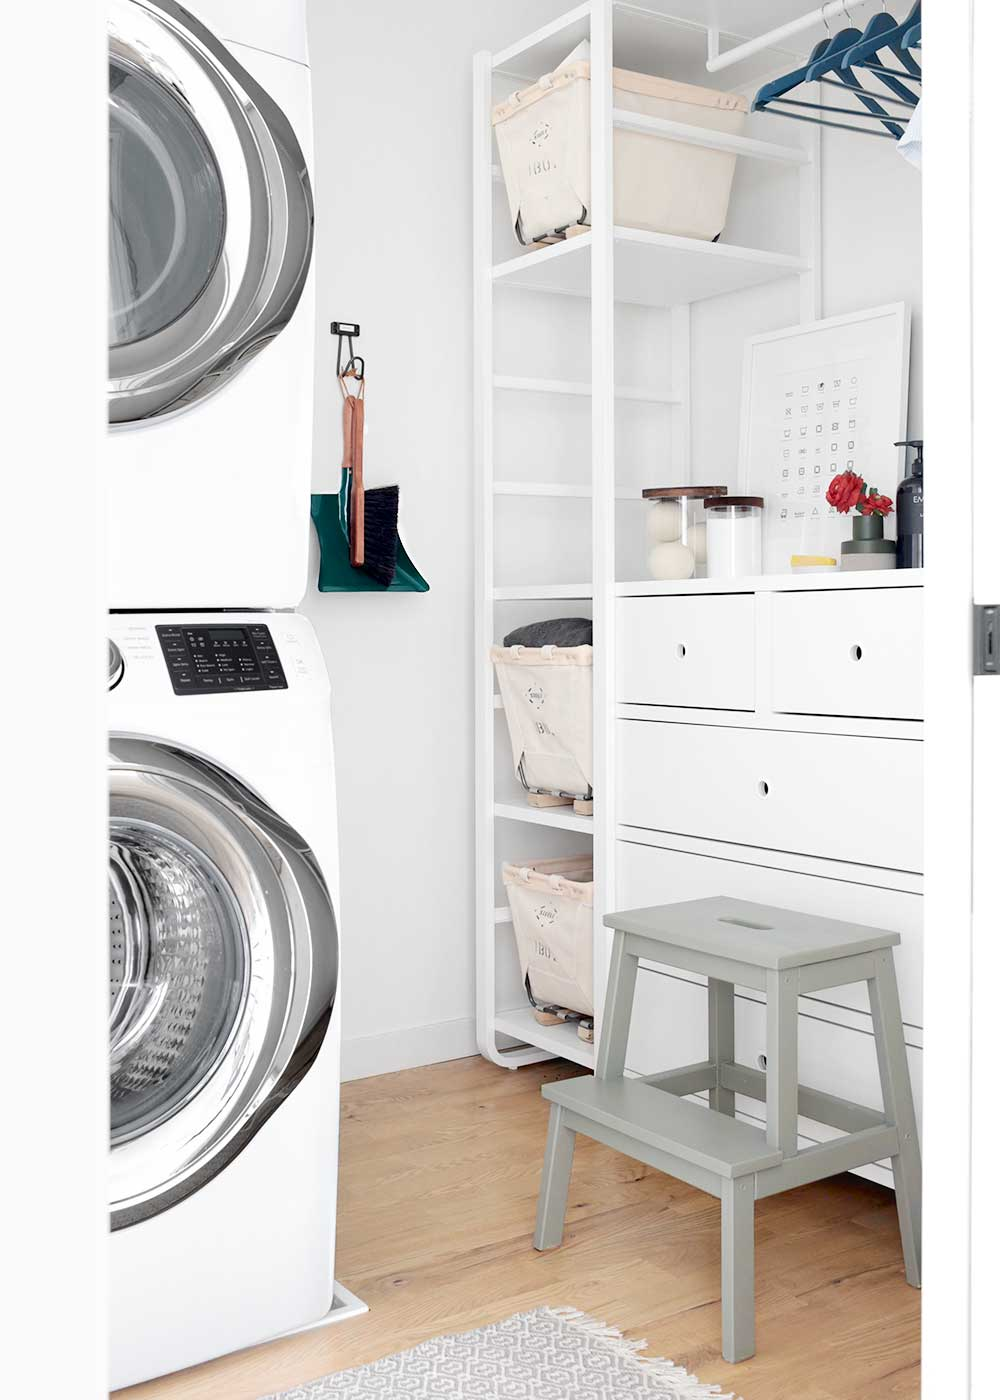 Weekend Laundry Room Makeover from The Fauxmartha using Ikea Elvarli